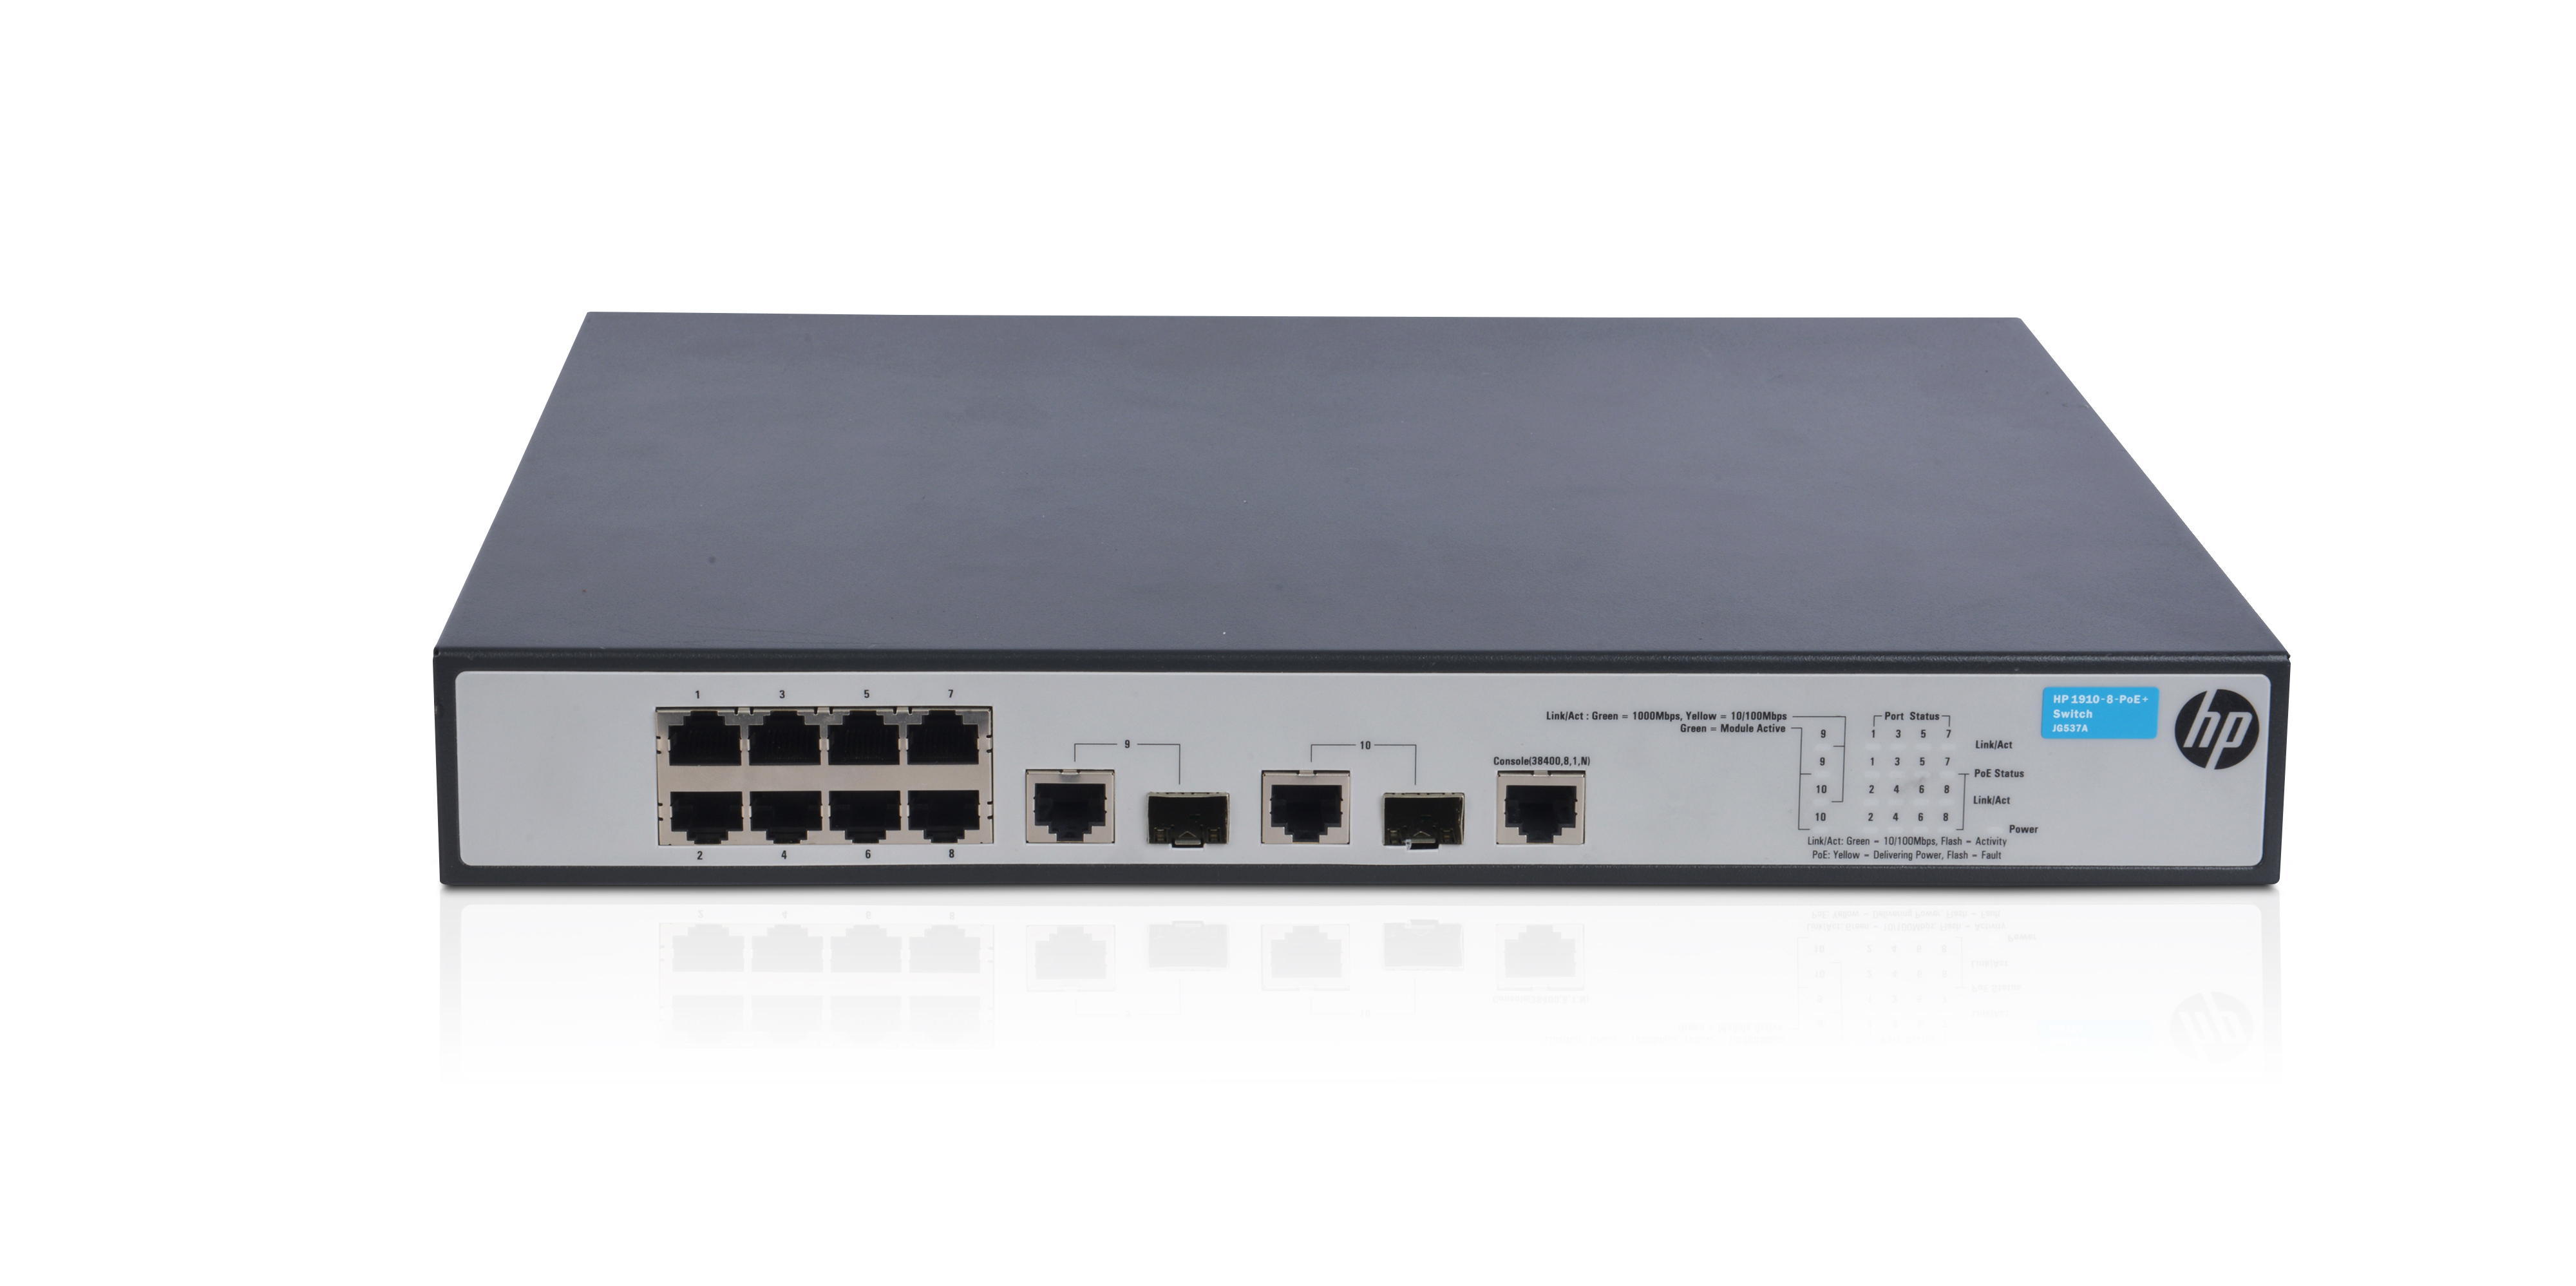 HPE 1910 8 PoE+ Switch